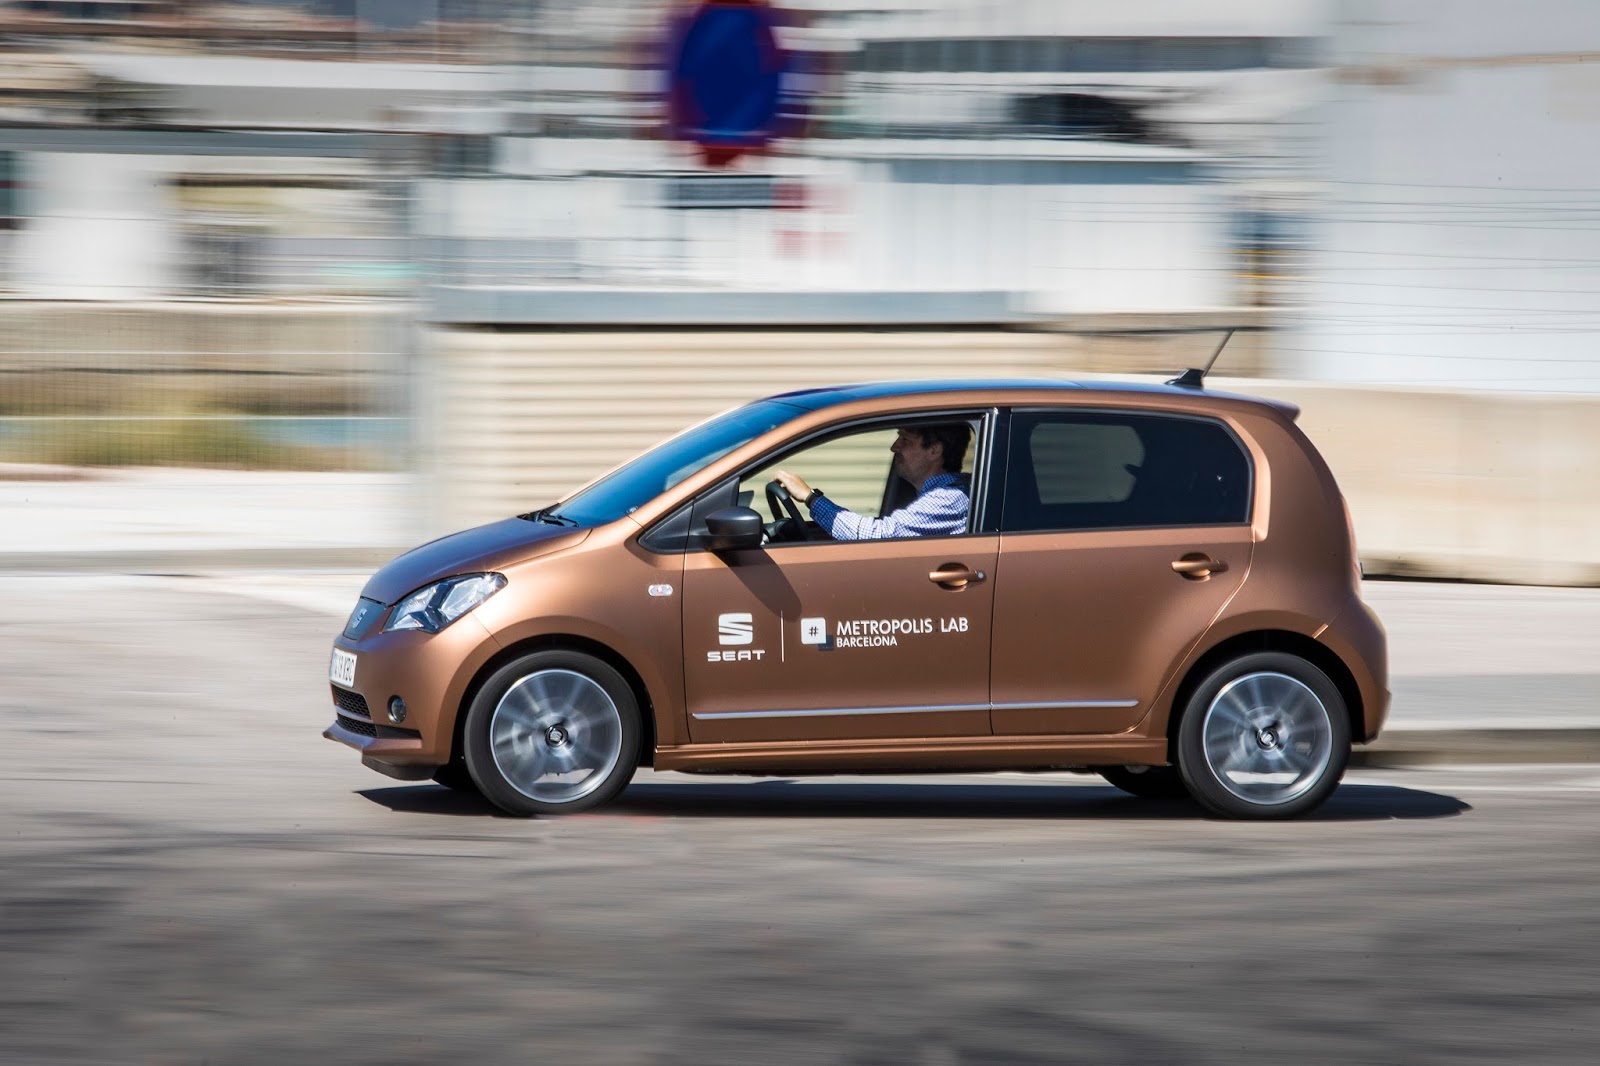 abaea7f15d Spanish carmaker SEAT has introduced a pilot car-sharing project in  Barcelona with a fleet of Mii electric cars